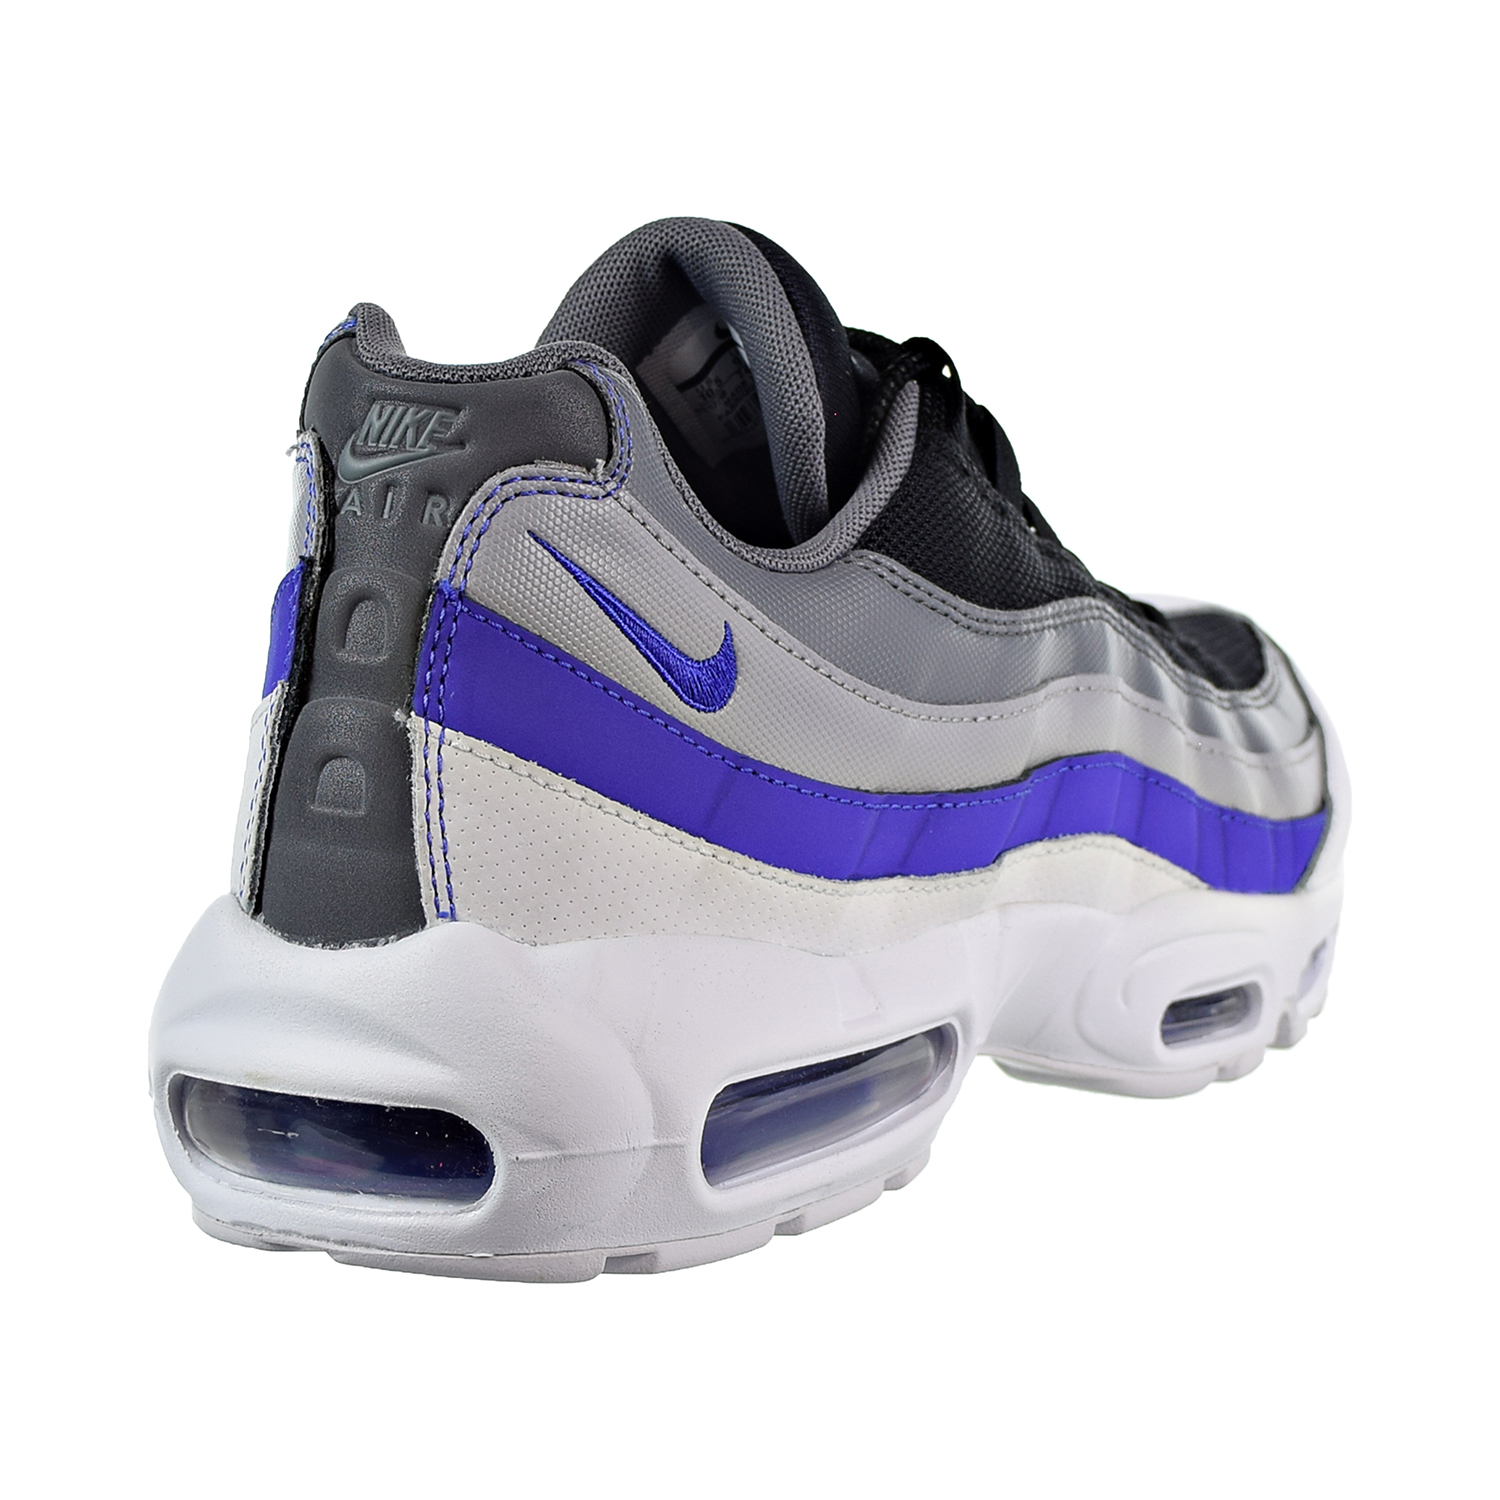 13d1499f495cf Nike Air Max 95 Essential Men s Shoes White Persian Violet Cool Grey  749766-110